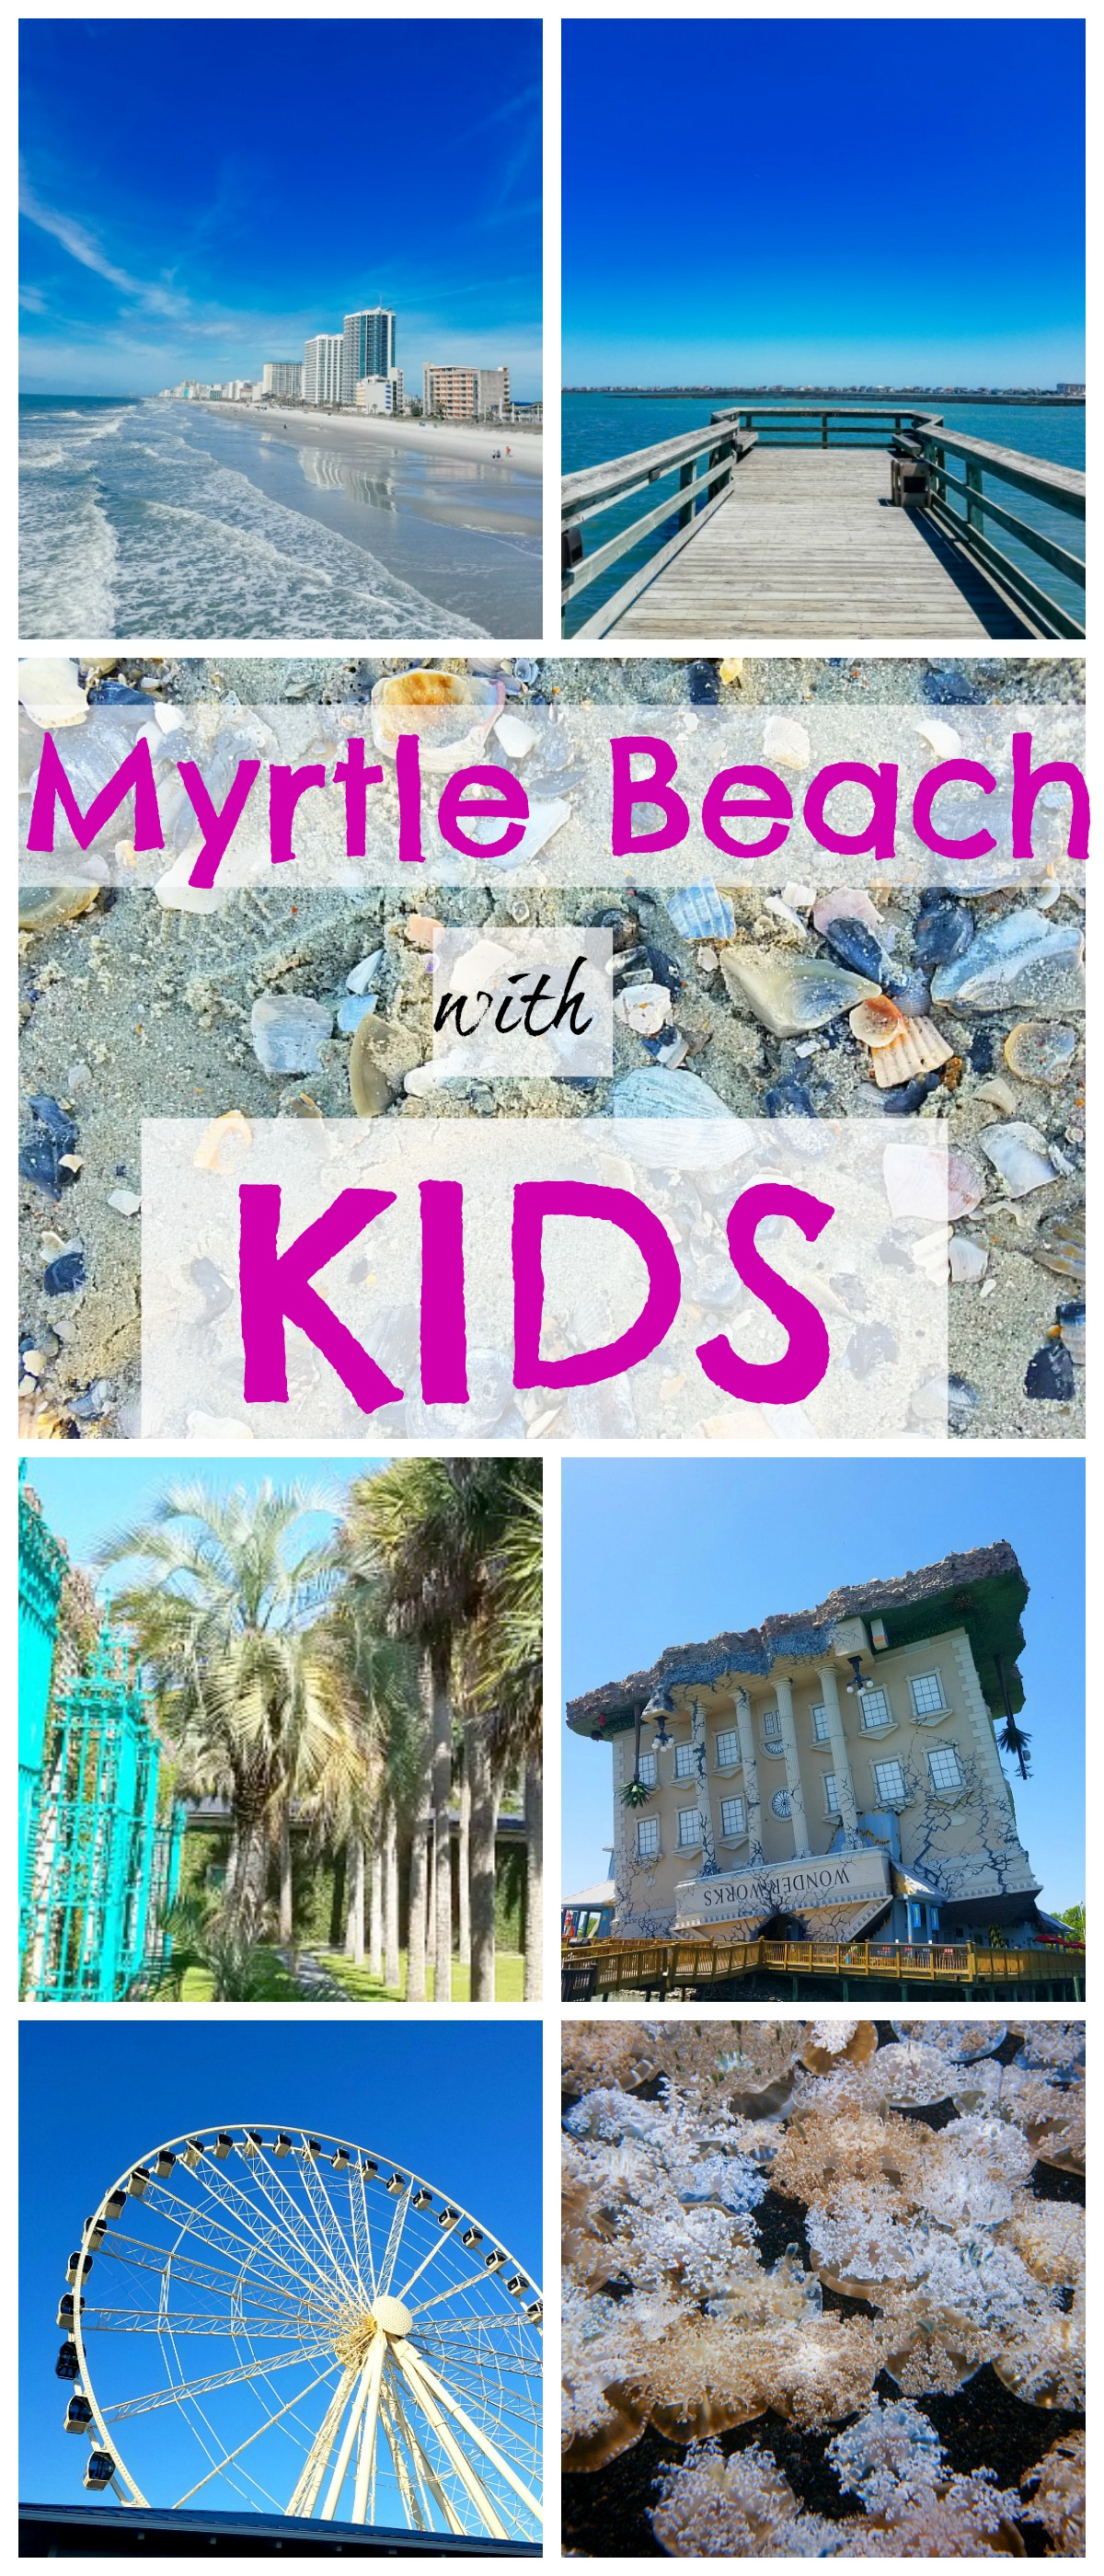 Best Lunch Places In Myrtle Beach